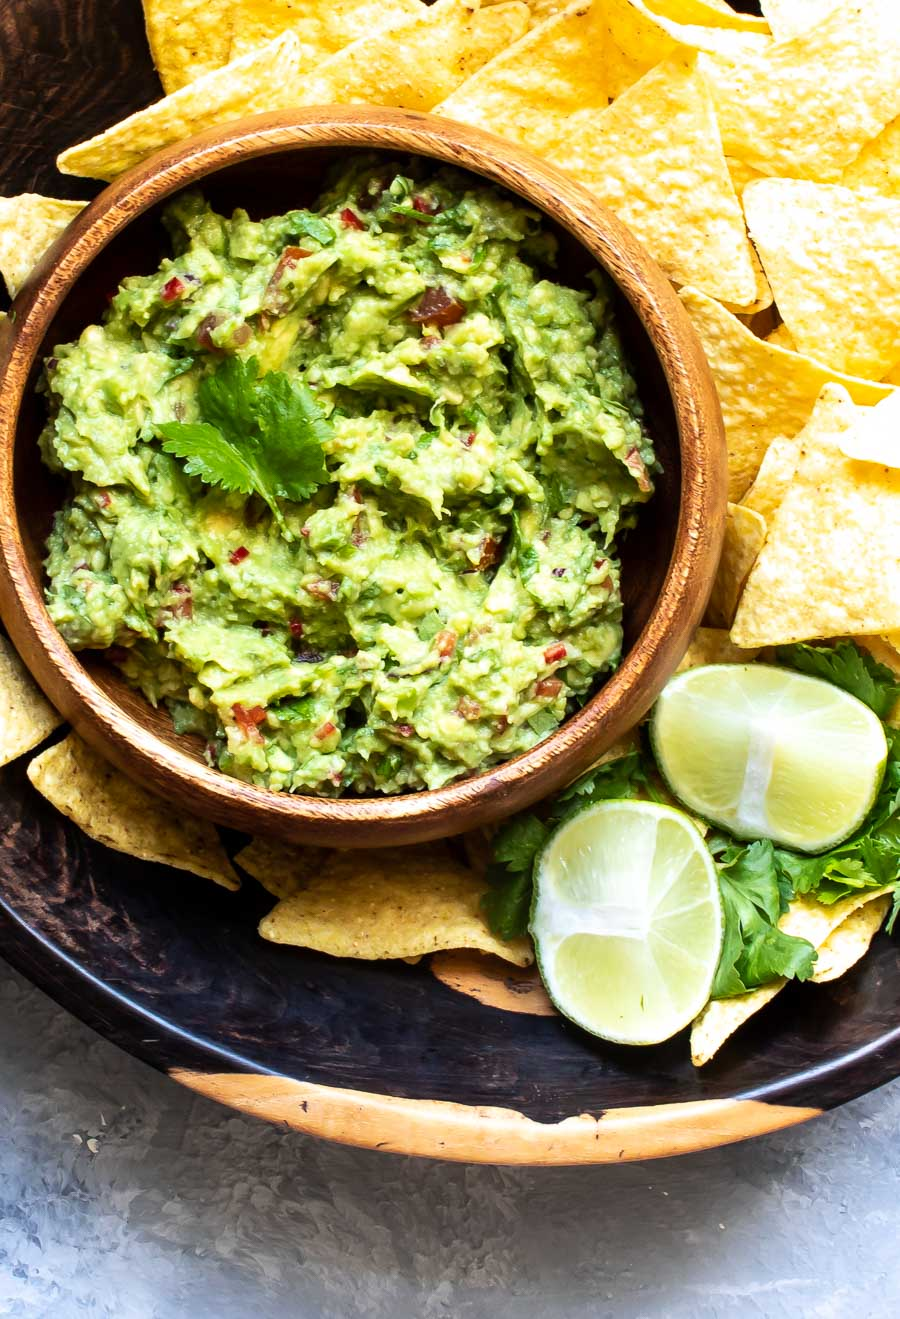 Guacamole - avocadodippen til mexicansk mad